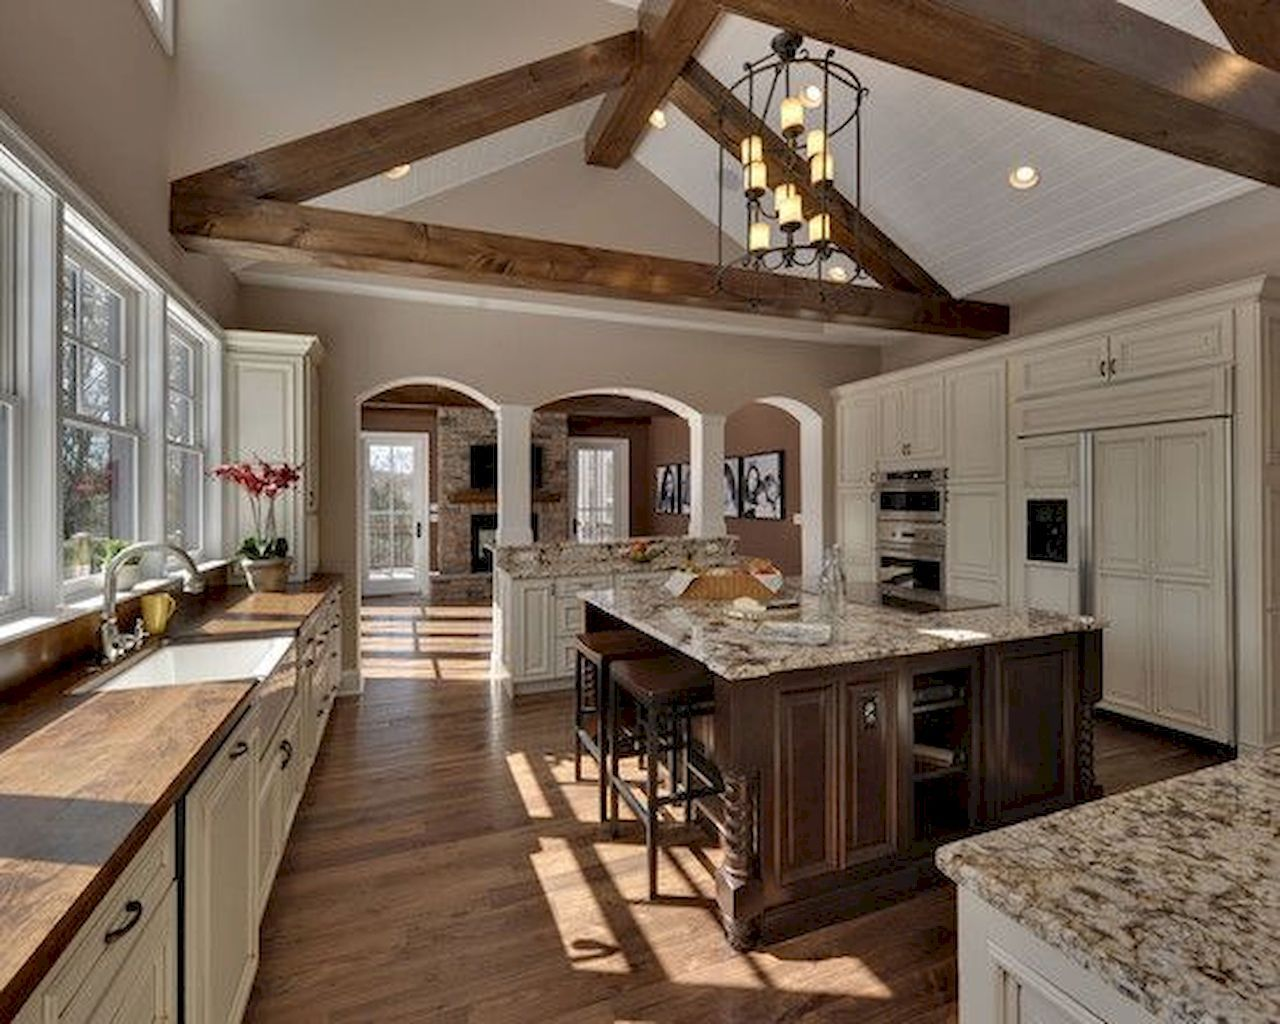 wood kitchen cabinets an investment to awesome kitchen vaulted ceiling kitchen new homes on kitchen cabinets vaulted ceiling id=58529